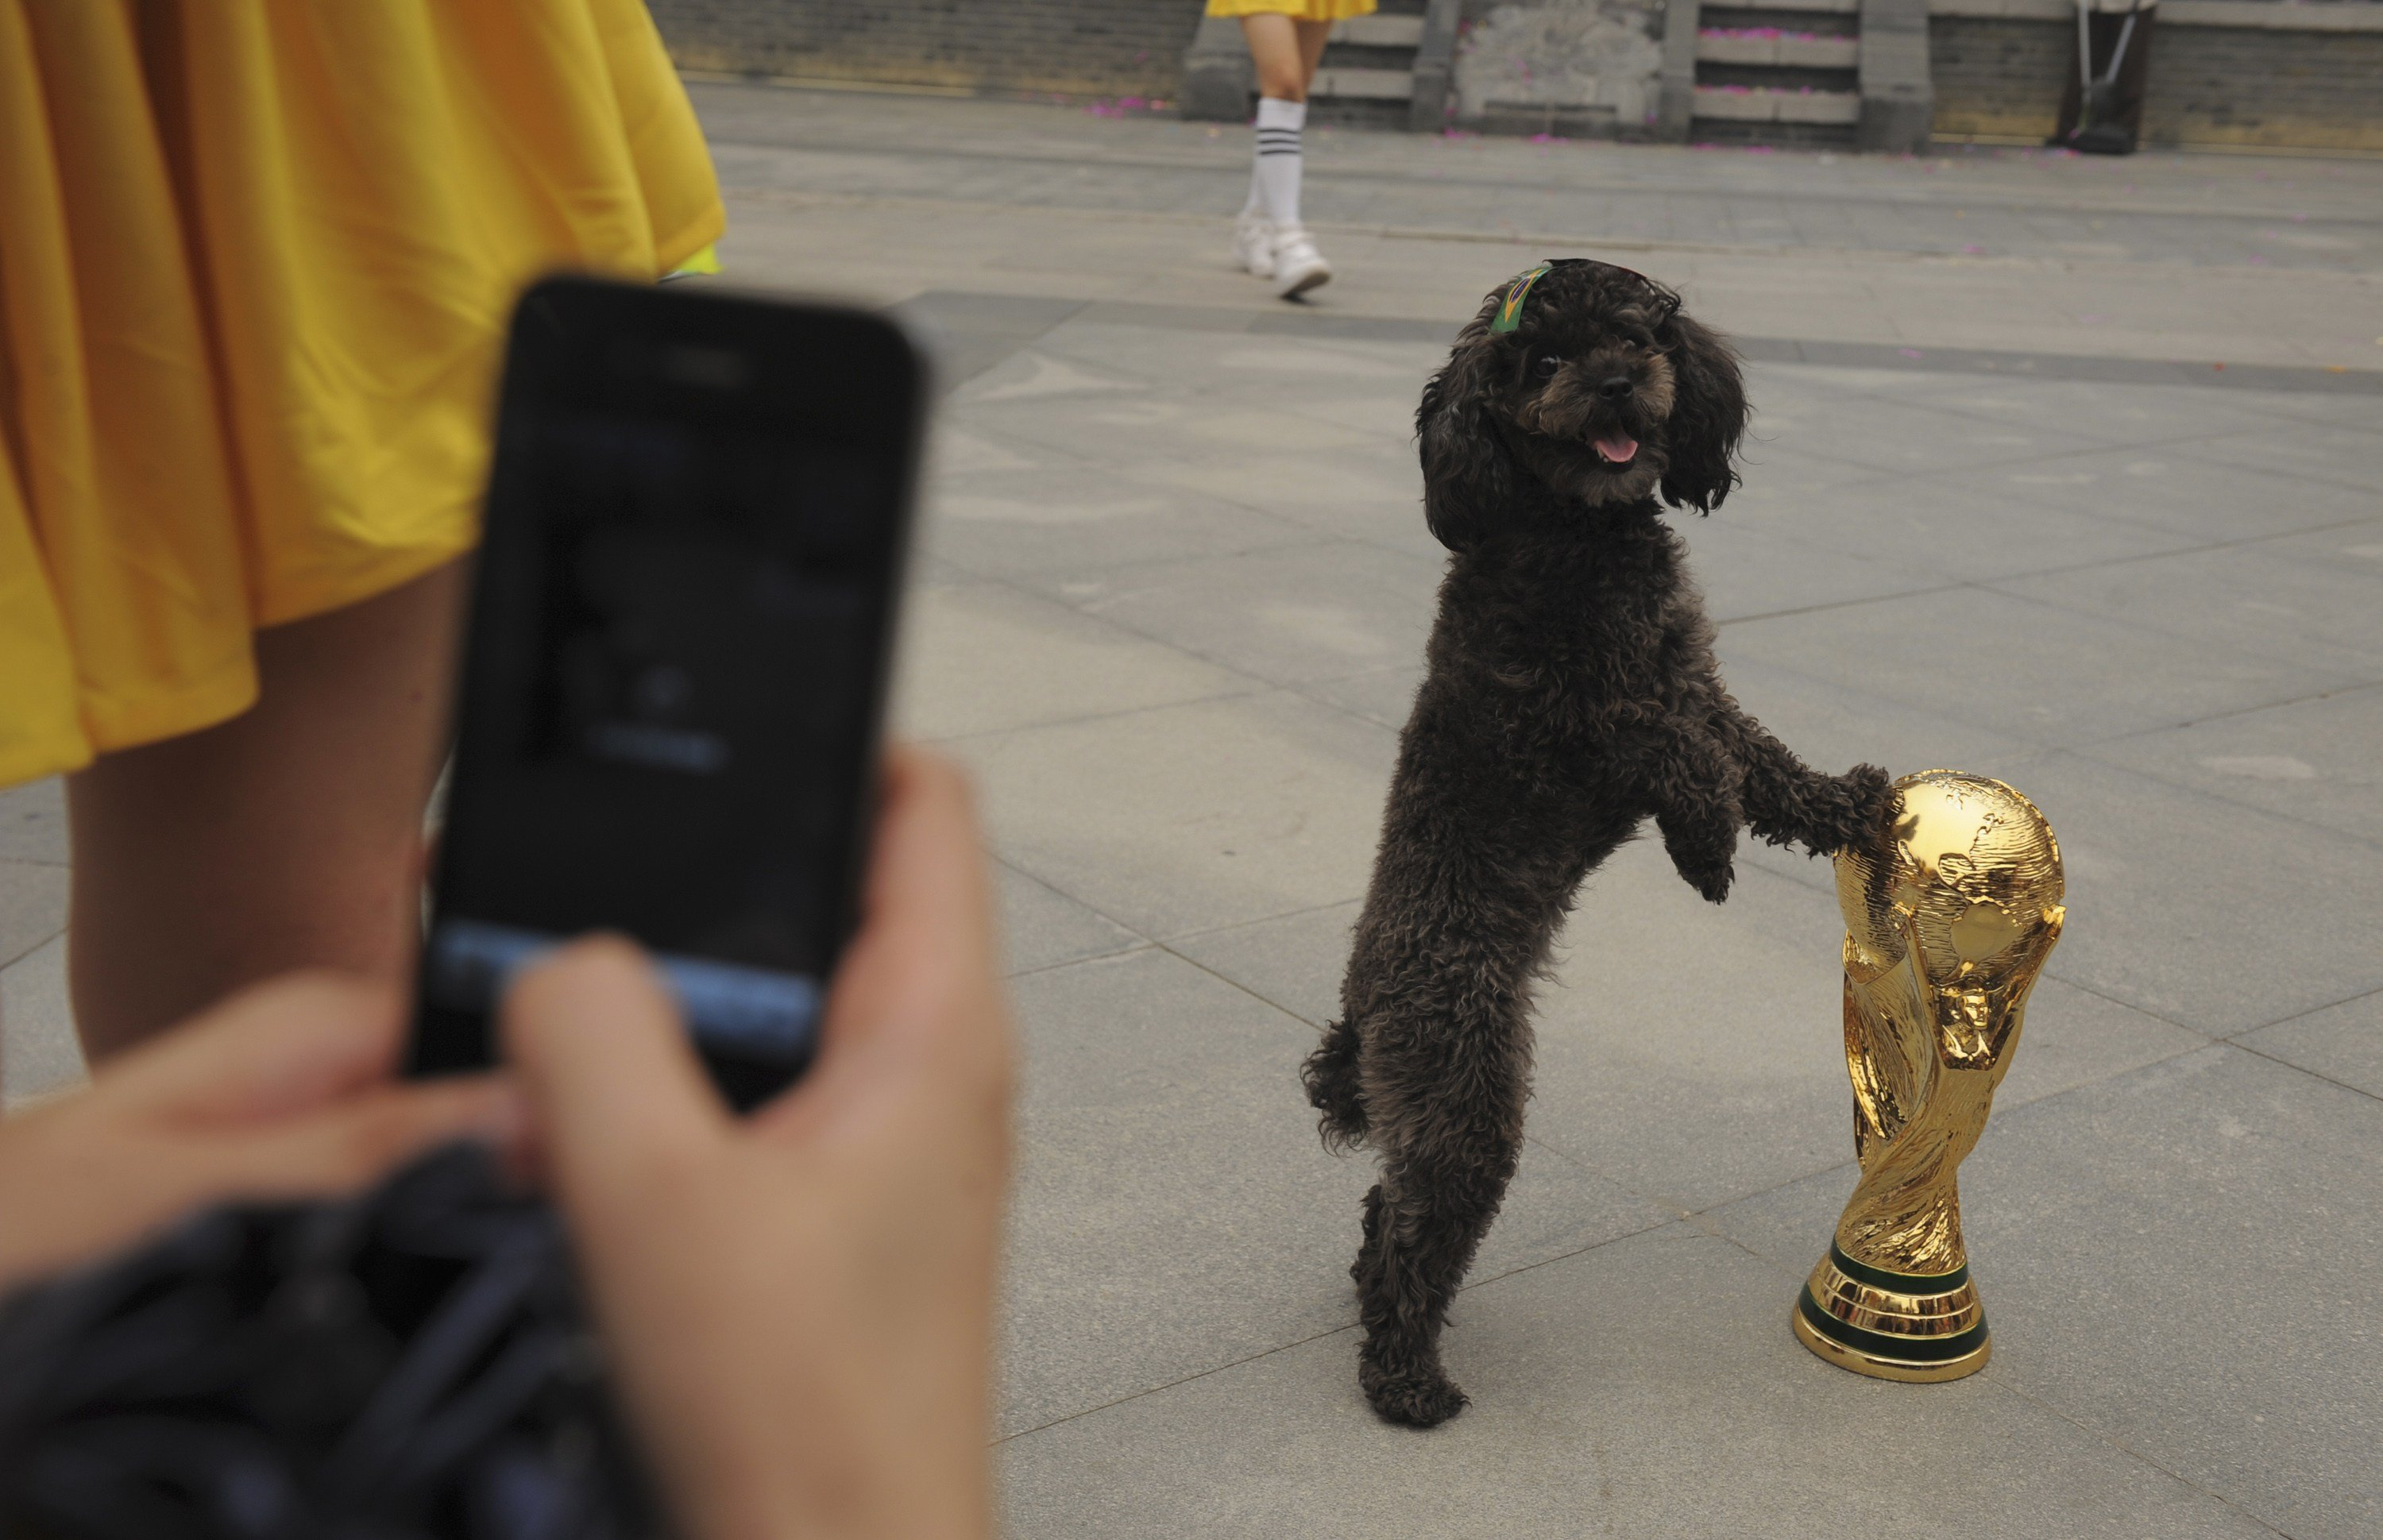 A dog with a Brazilian flag sticker on its head, touches a replica of the World Cup trophy as a visitor takes pictures during an event to celebrate the upcoming 2014 World Cup in Brazil, in Wuhan, Hubei province, China on June 12, 2014.